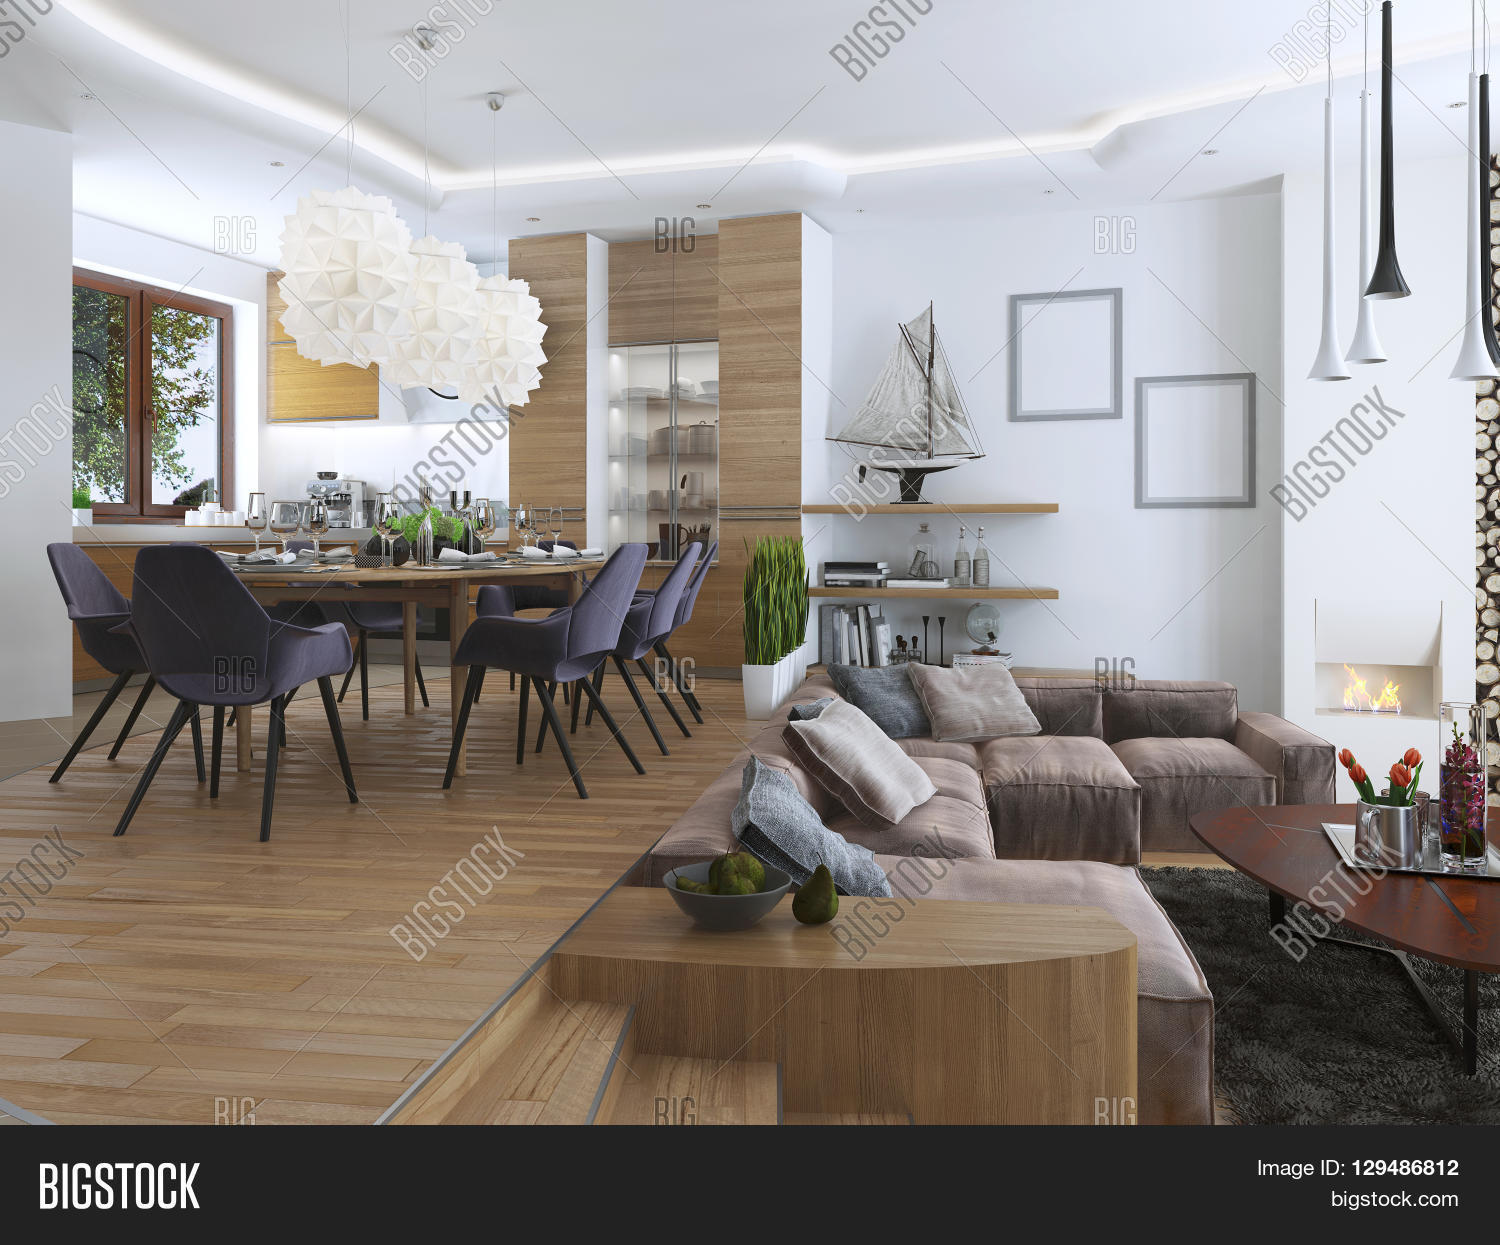 Large Living Room Design Studio Apartment With Living Room And Dining Room In A